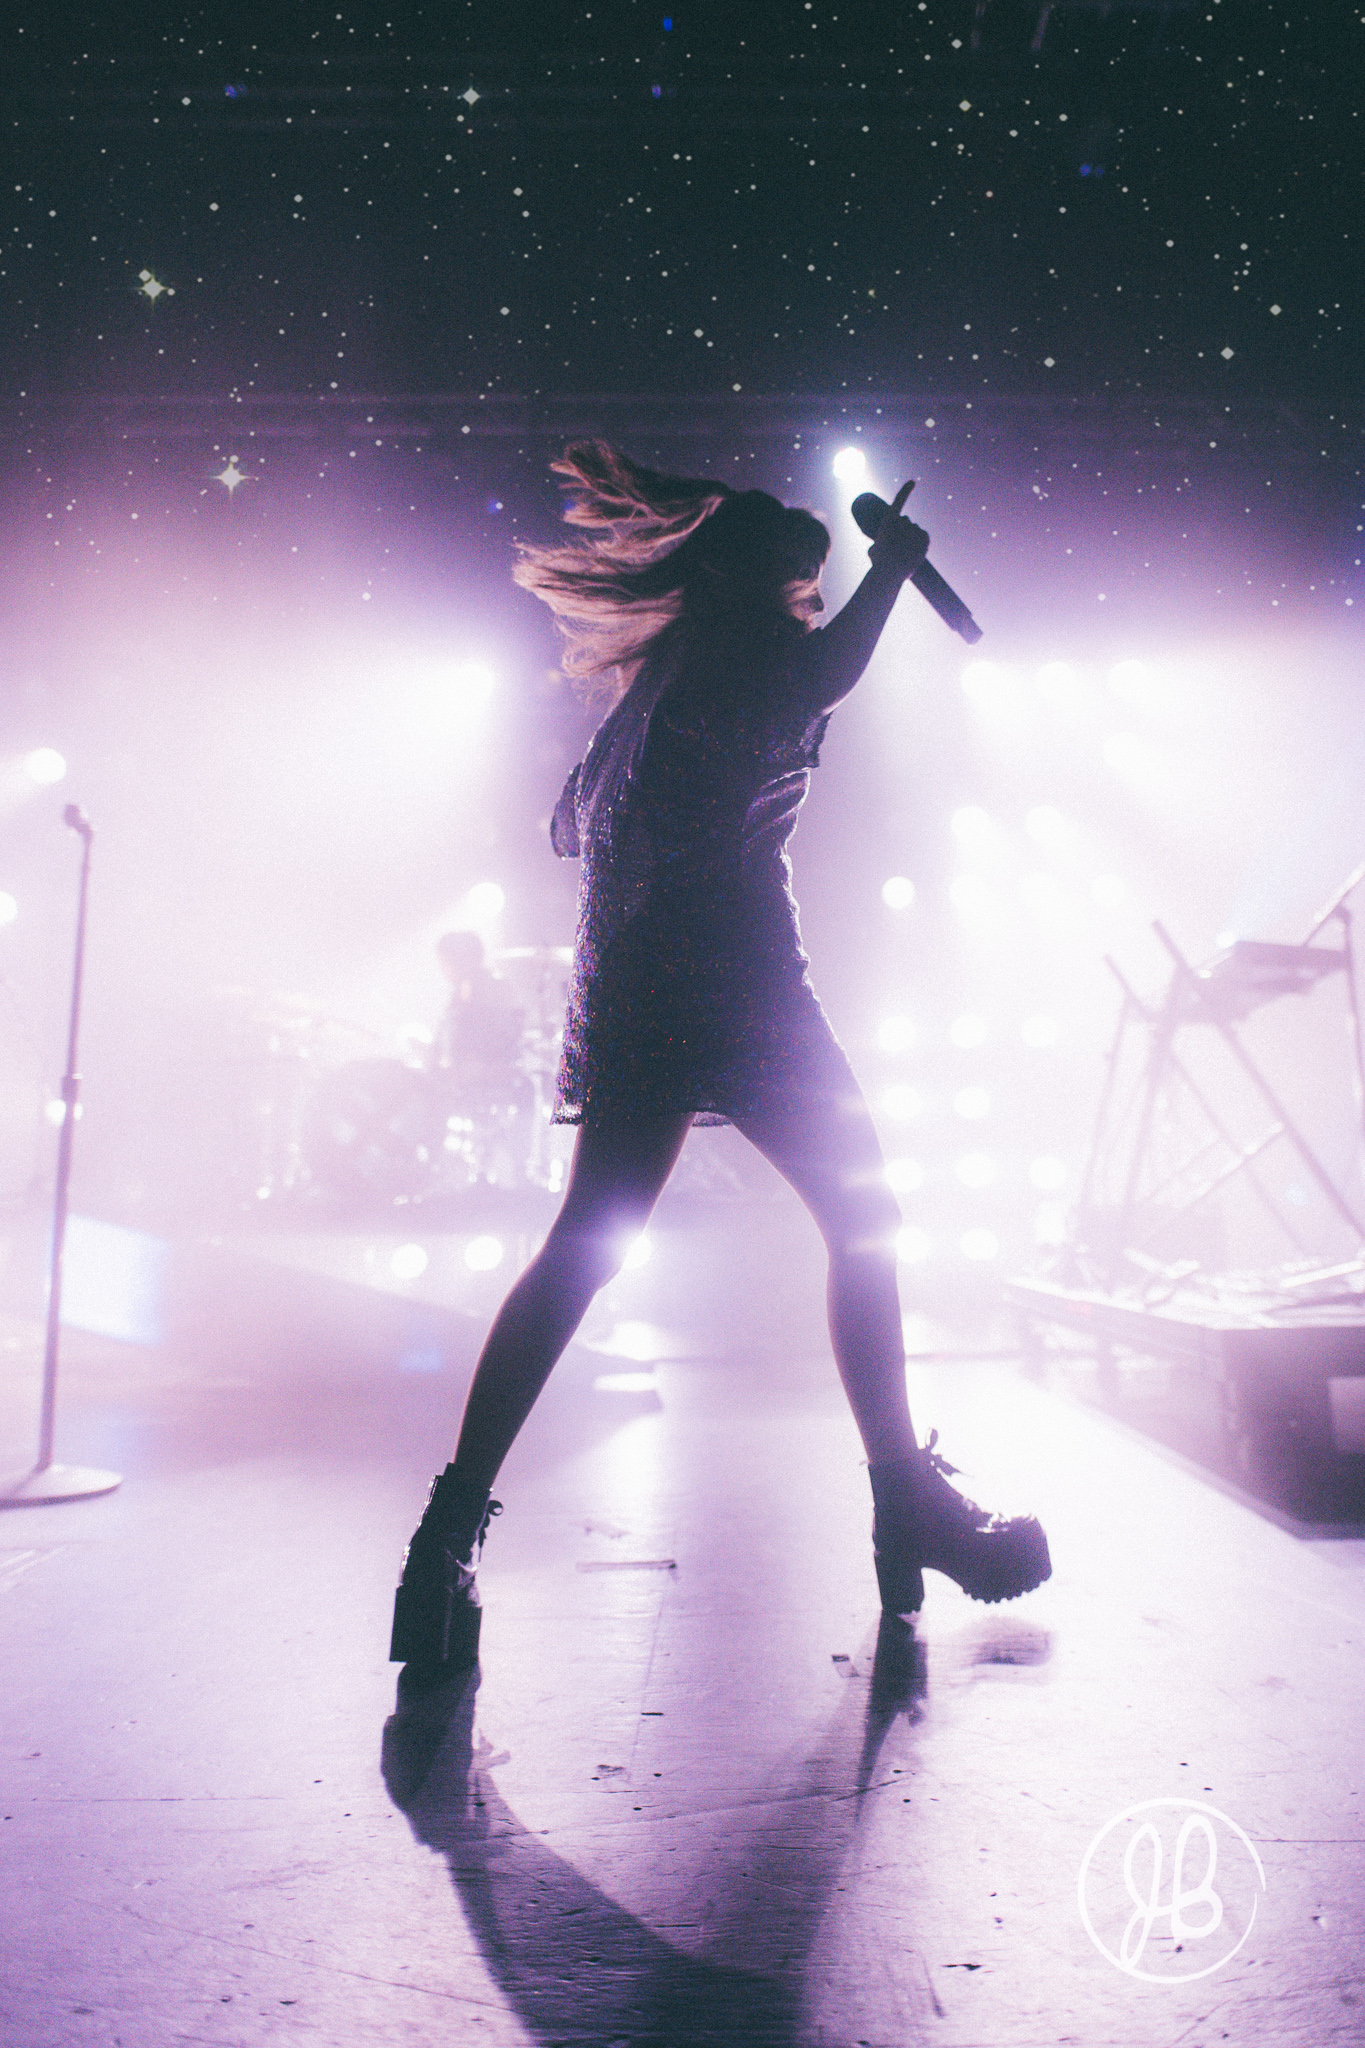 Chvrches-Acentric-39.jpg